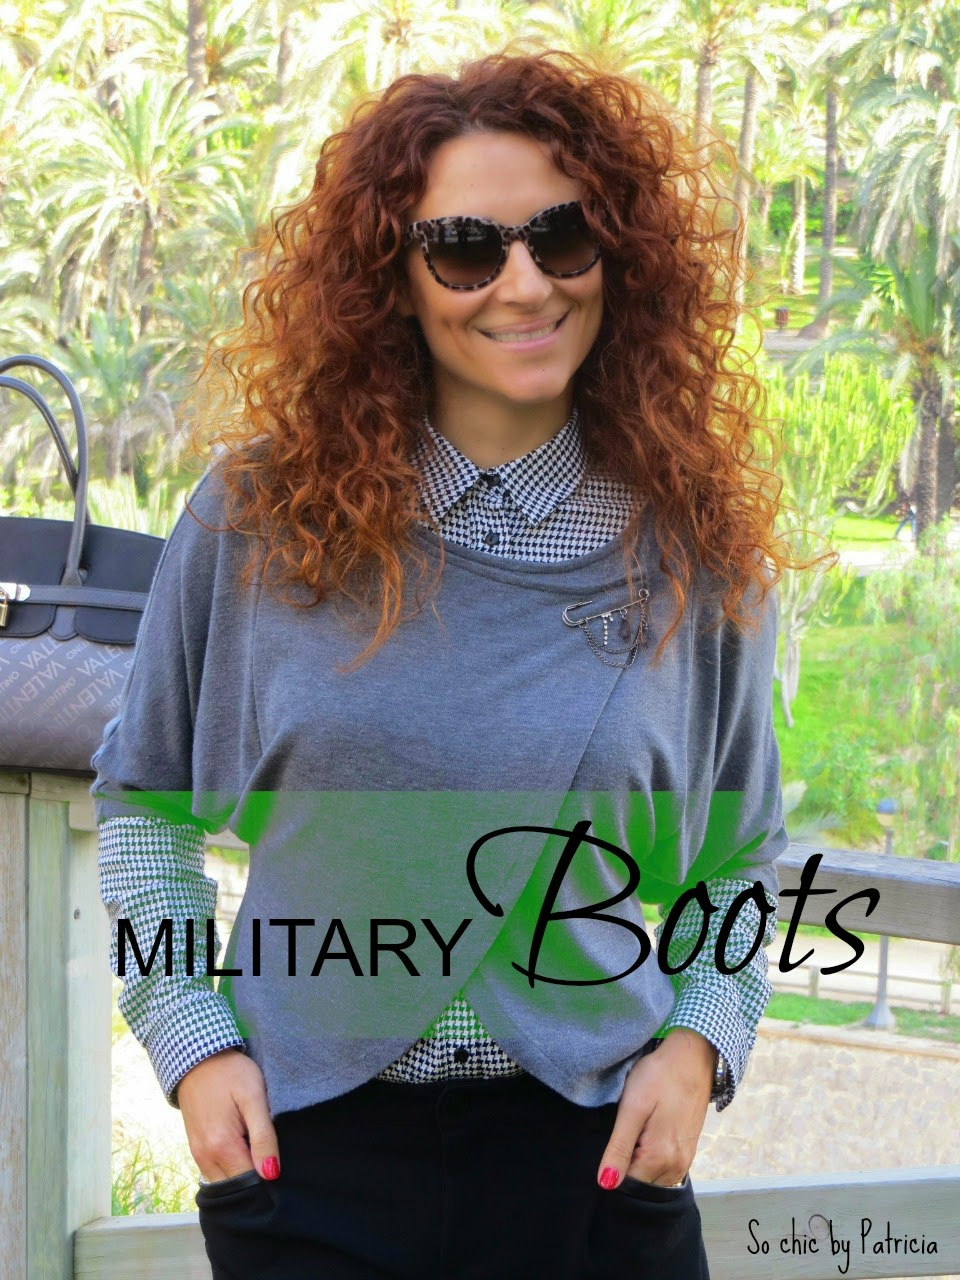 So chic by Patricia_Military Boots